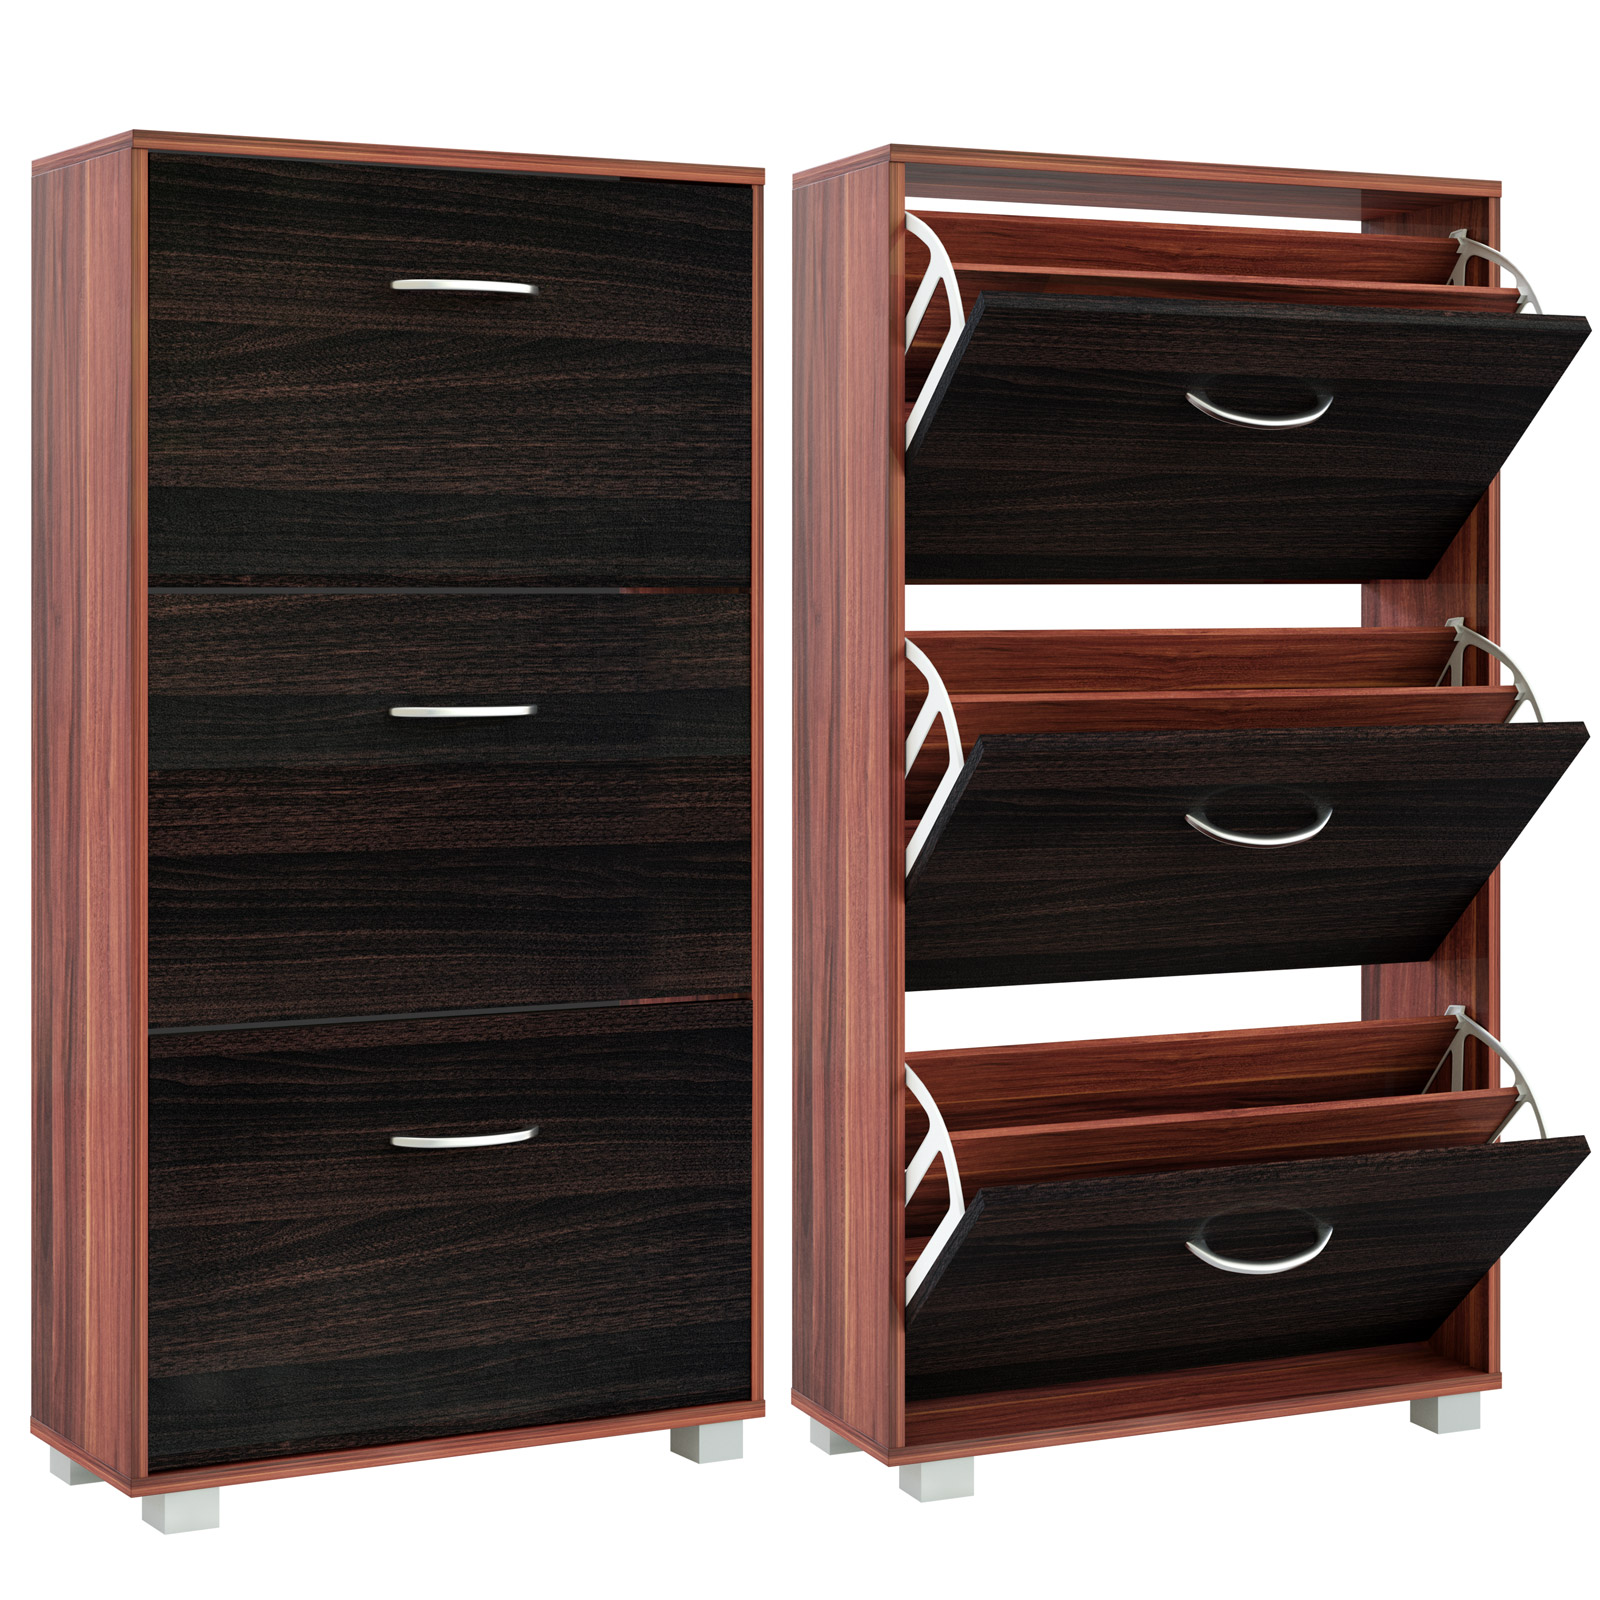 b ware schuhschrank merano schwarz 302899 schuhregal. Black Bedroom Furniture Sets. Home Design Ideas